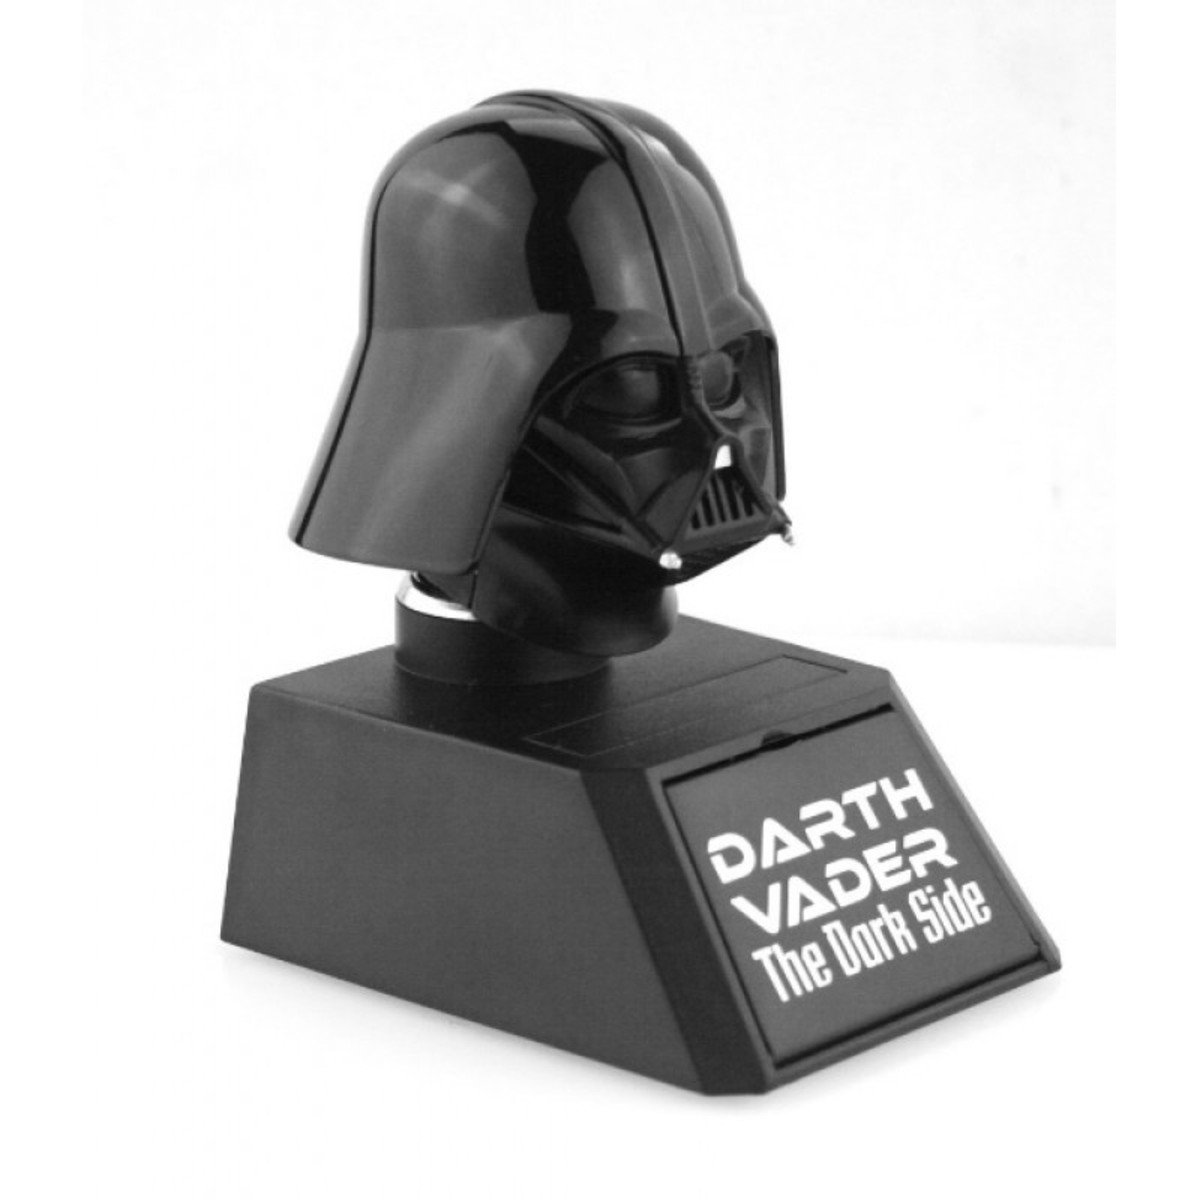 Darth Vader Battle damaged Collectible Bust Car mounted charger